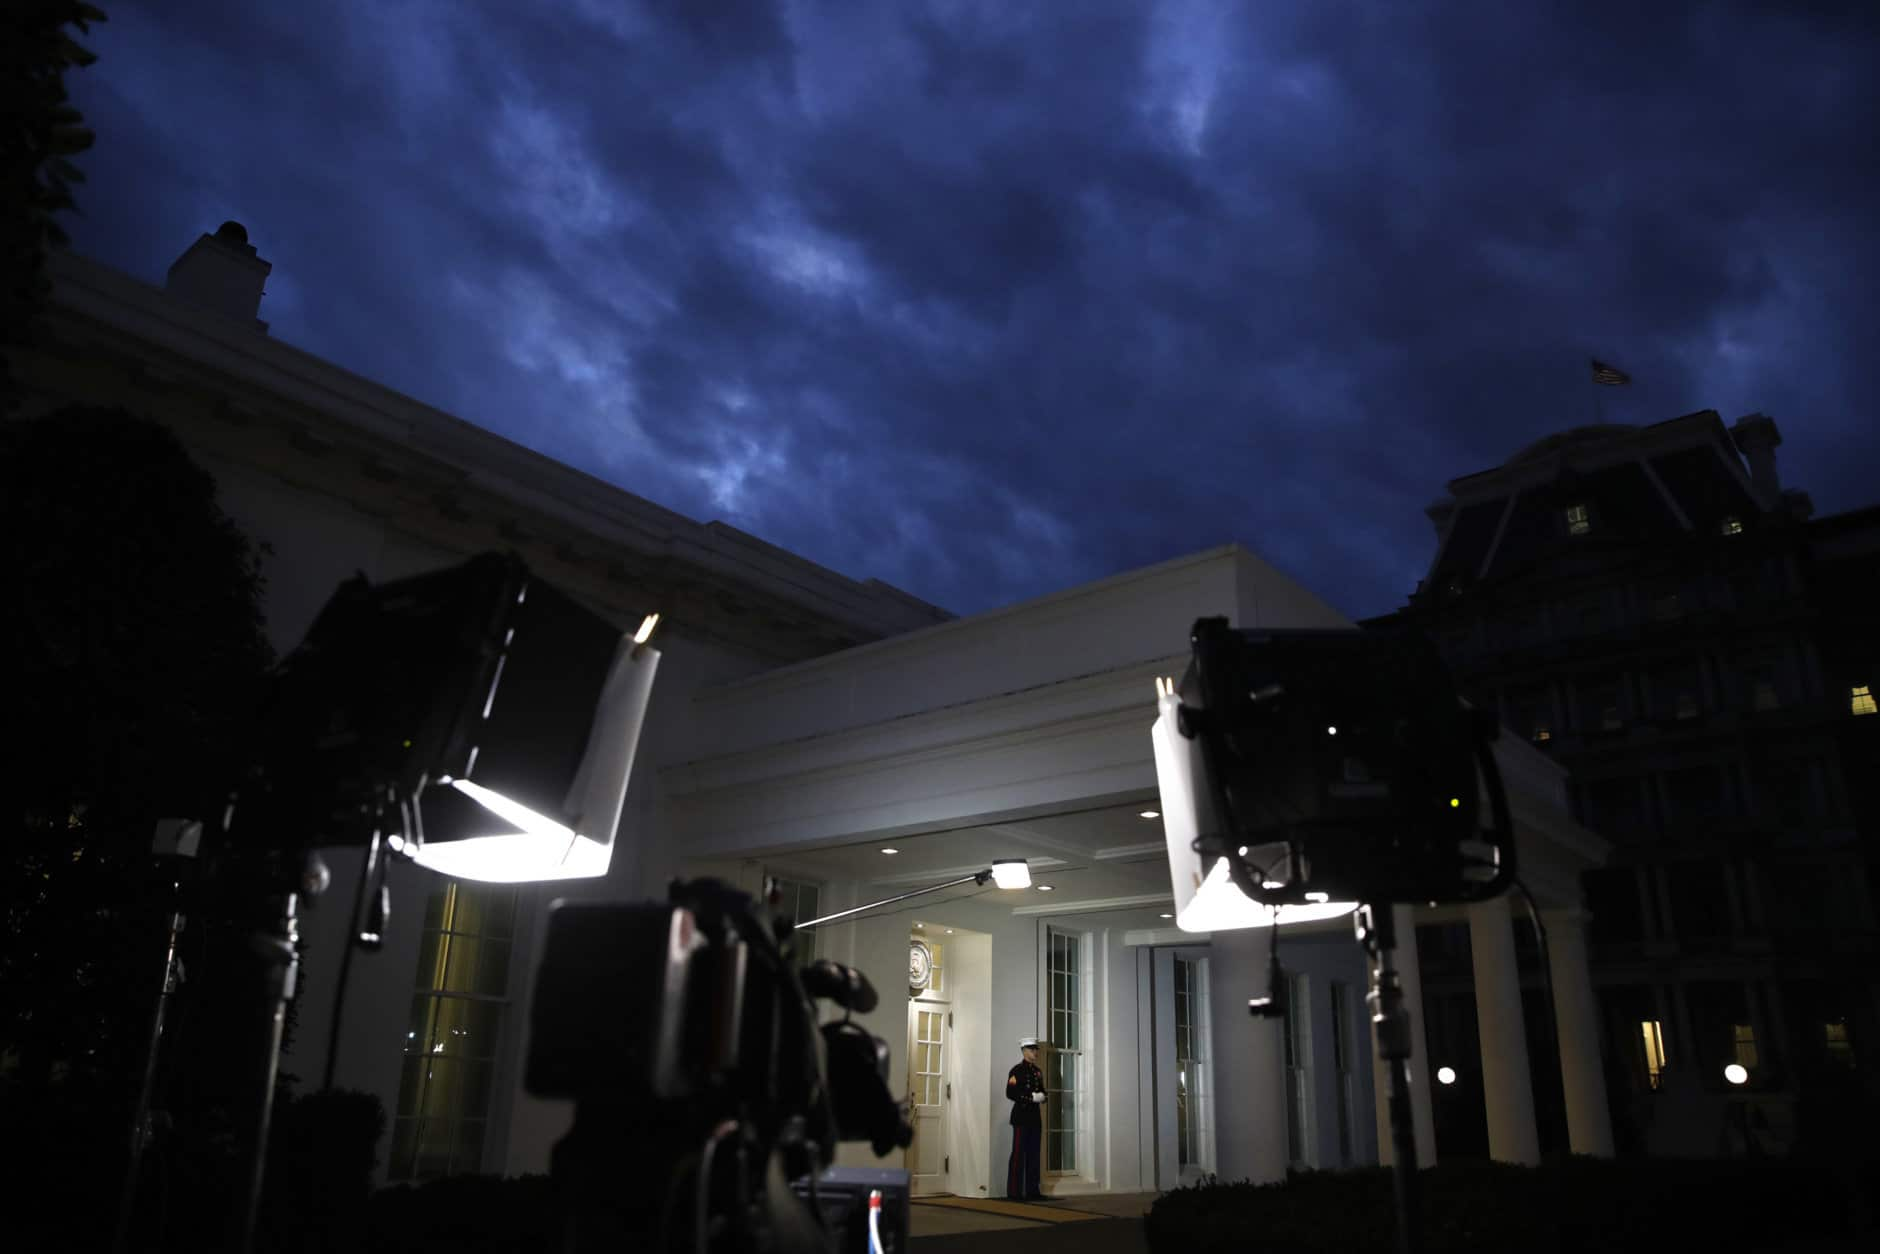 A Marine stands by the door to the West Wing of the White House, Tuesday Jan. 8, 2019, in Washington, as television lights are at the ready a few hours before President Donald Trump is expected to make an address to the nation. (AP Photo/Jacquelyn Martin)